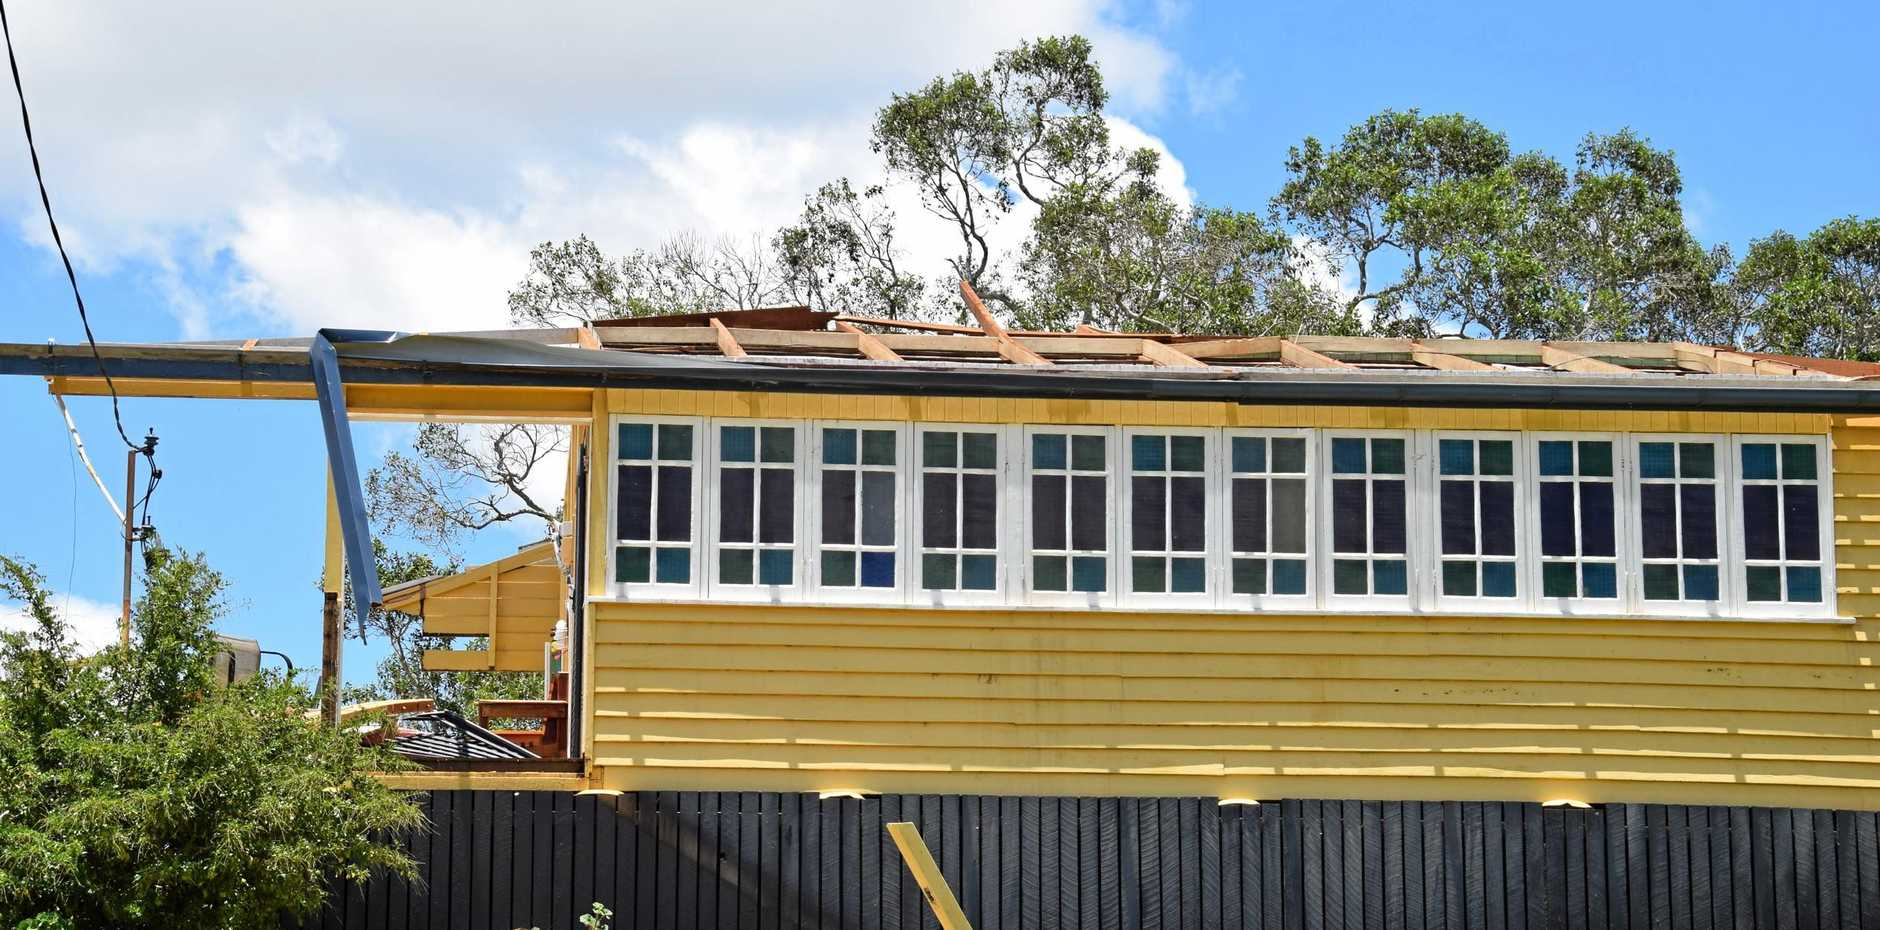 Valda Smith's home was destroyed in the Boxing Day storm in Kumbia.